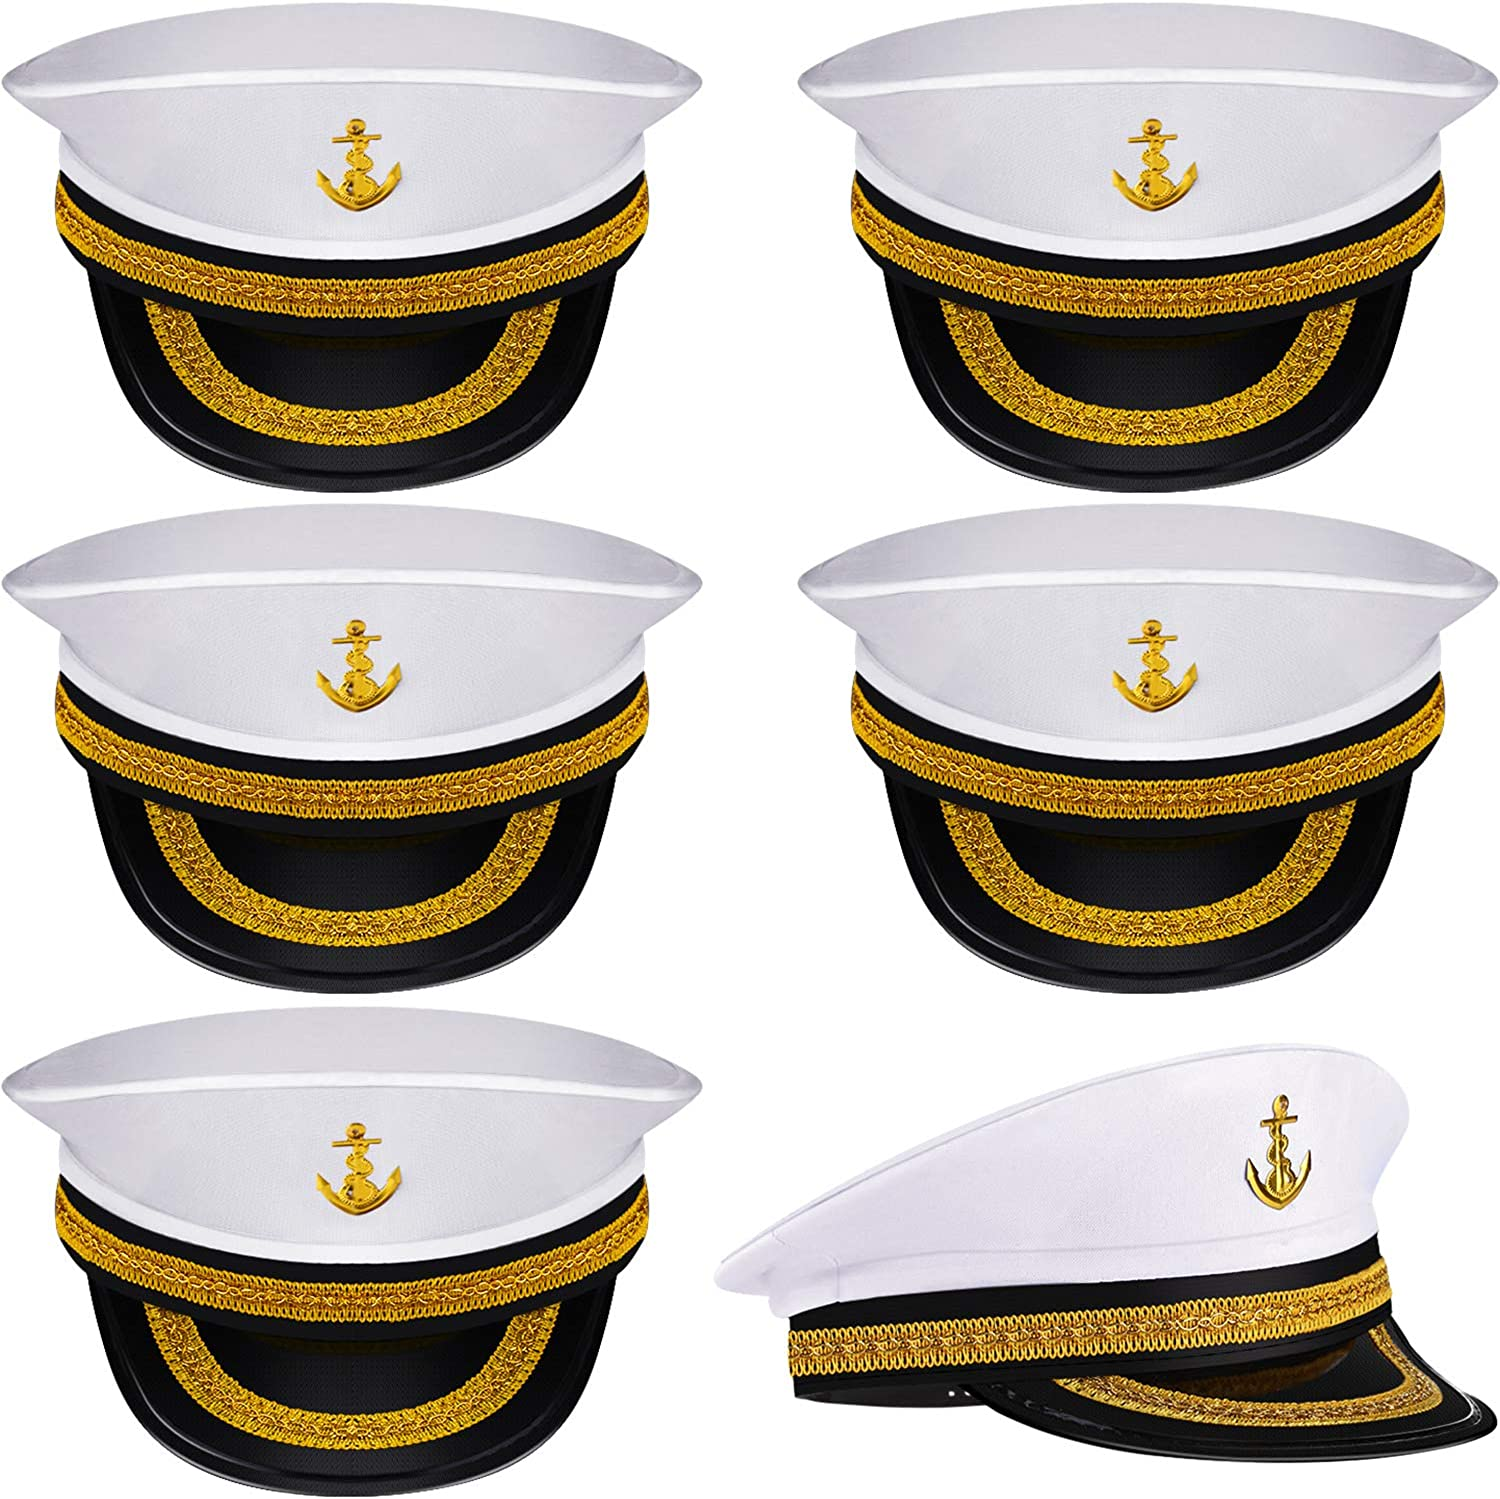 Boao 6 Pieces Halloween White Sailor Hat Navy Captain Caps Yacht Nautical Hats for Adult Sailor Costume, Dress Up Party Hats